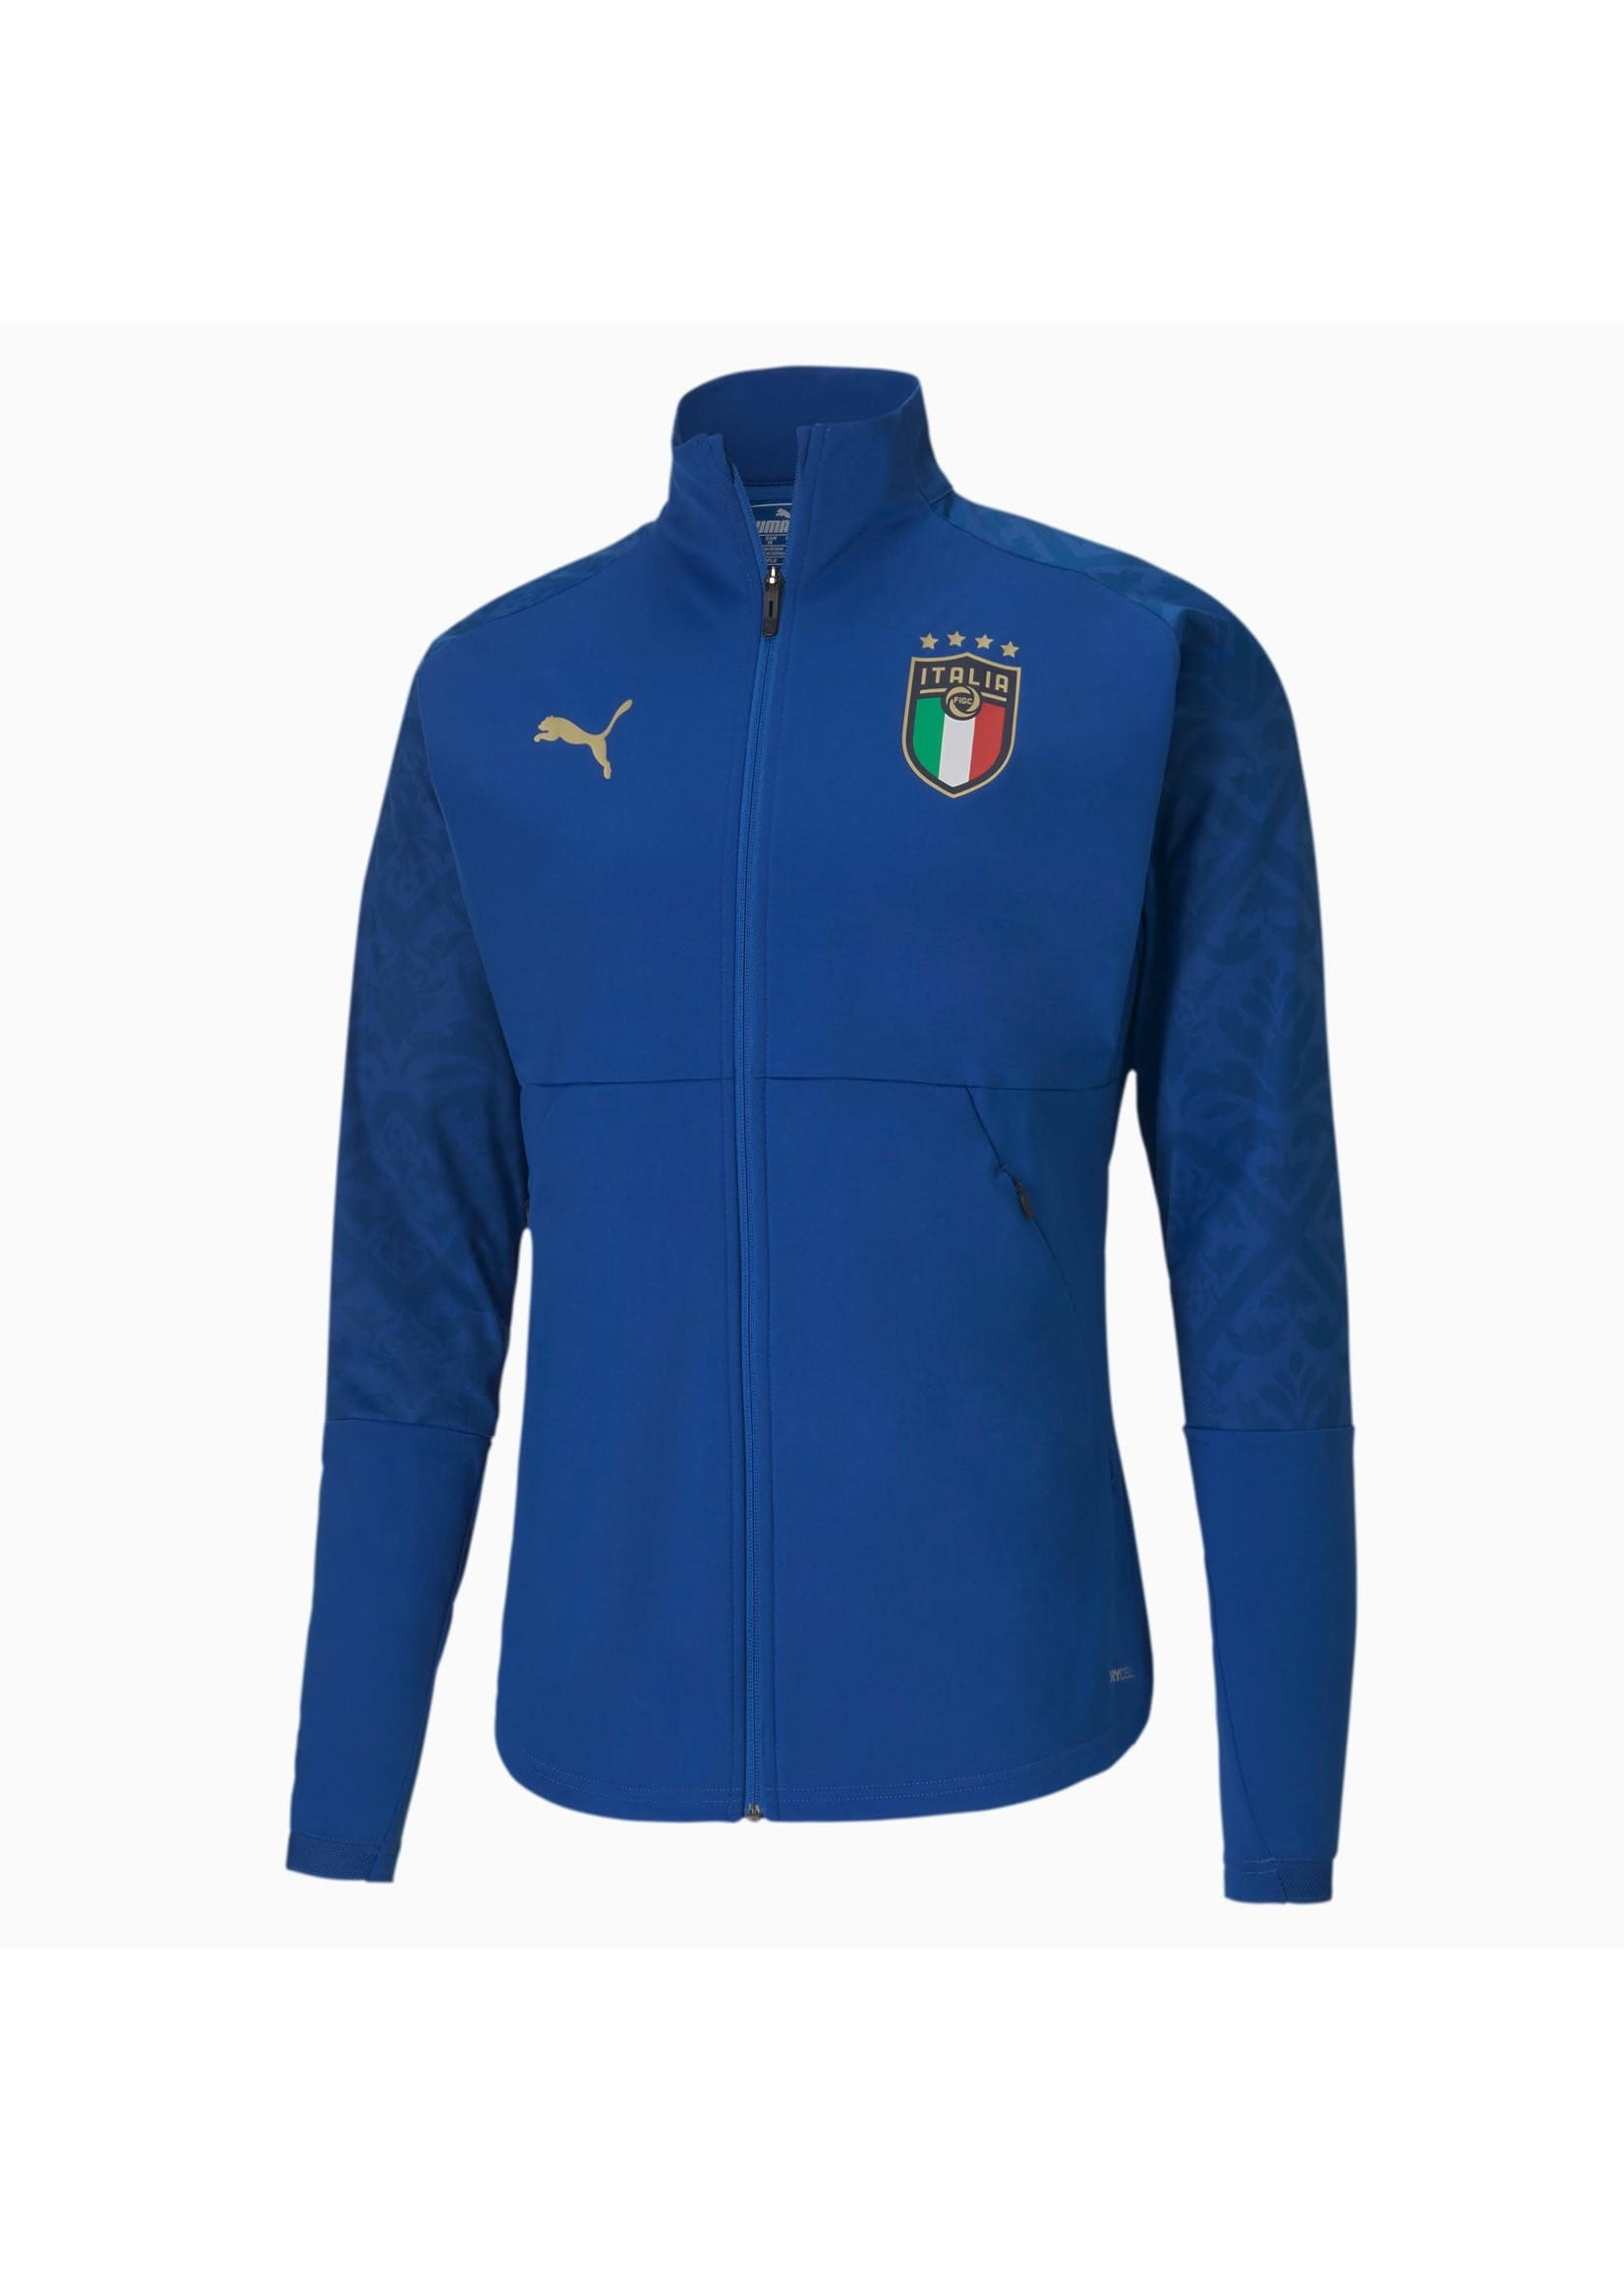 Puma Italy Track Jacket - Full Zip - 757951 01